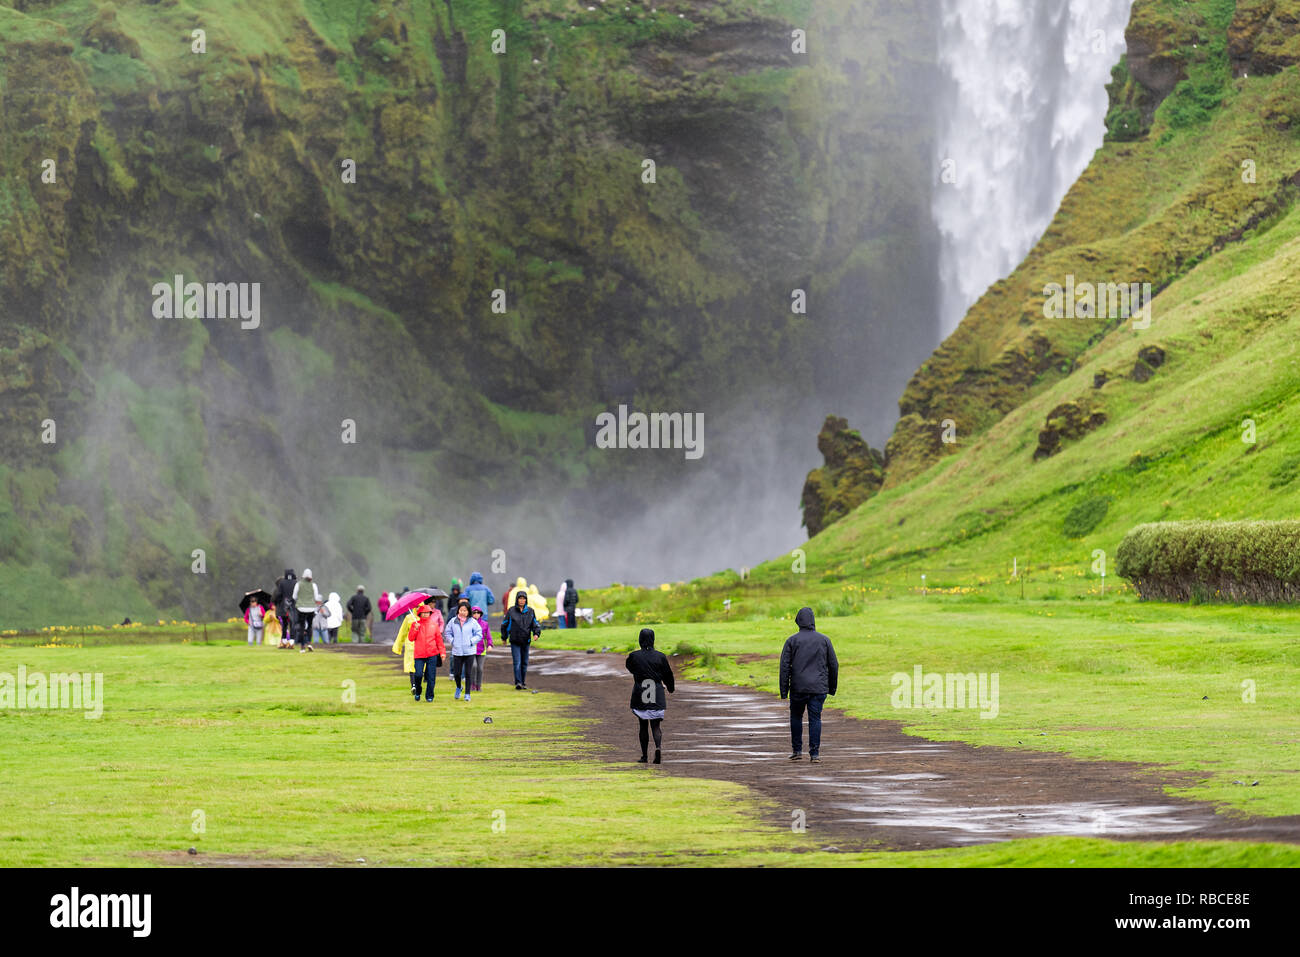 Skogafoss, Iceland - June 14, 2018: Waterfall on cliff with green grass hills and many tourists people walking with umbrellas and ponchos on trail roa - Stock Image